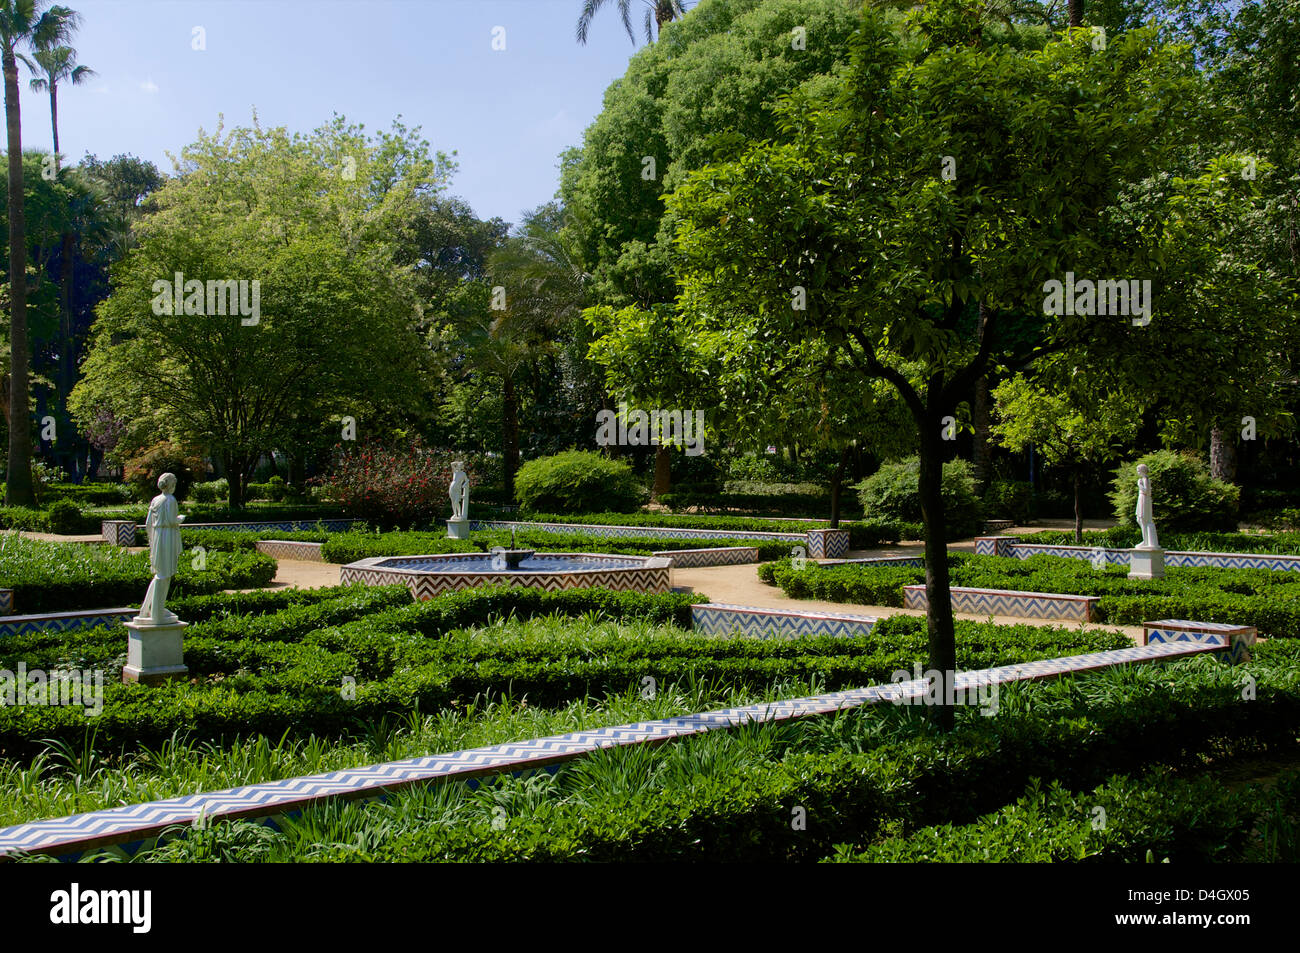 Statues and flower beds, Maria Luisa park, Seville, Andalusia, Spain - Stock Image